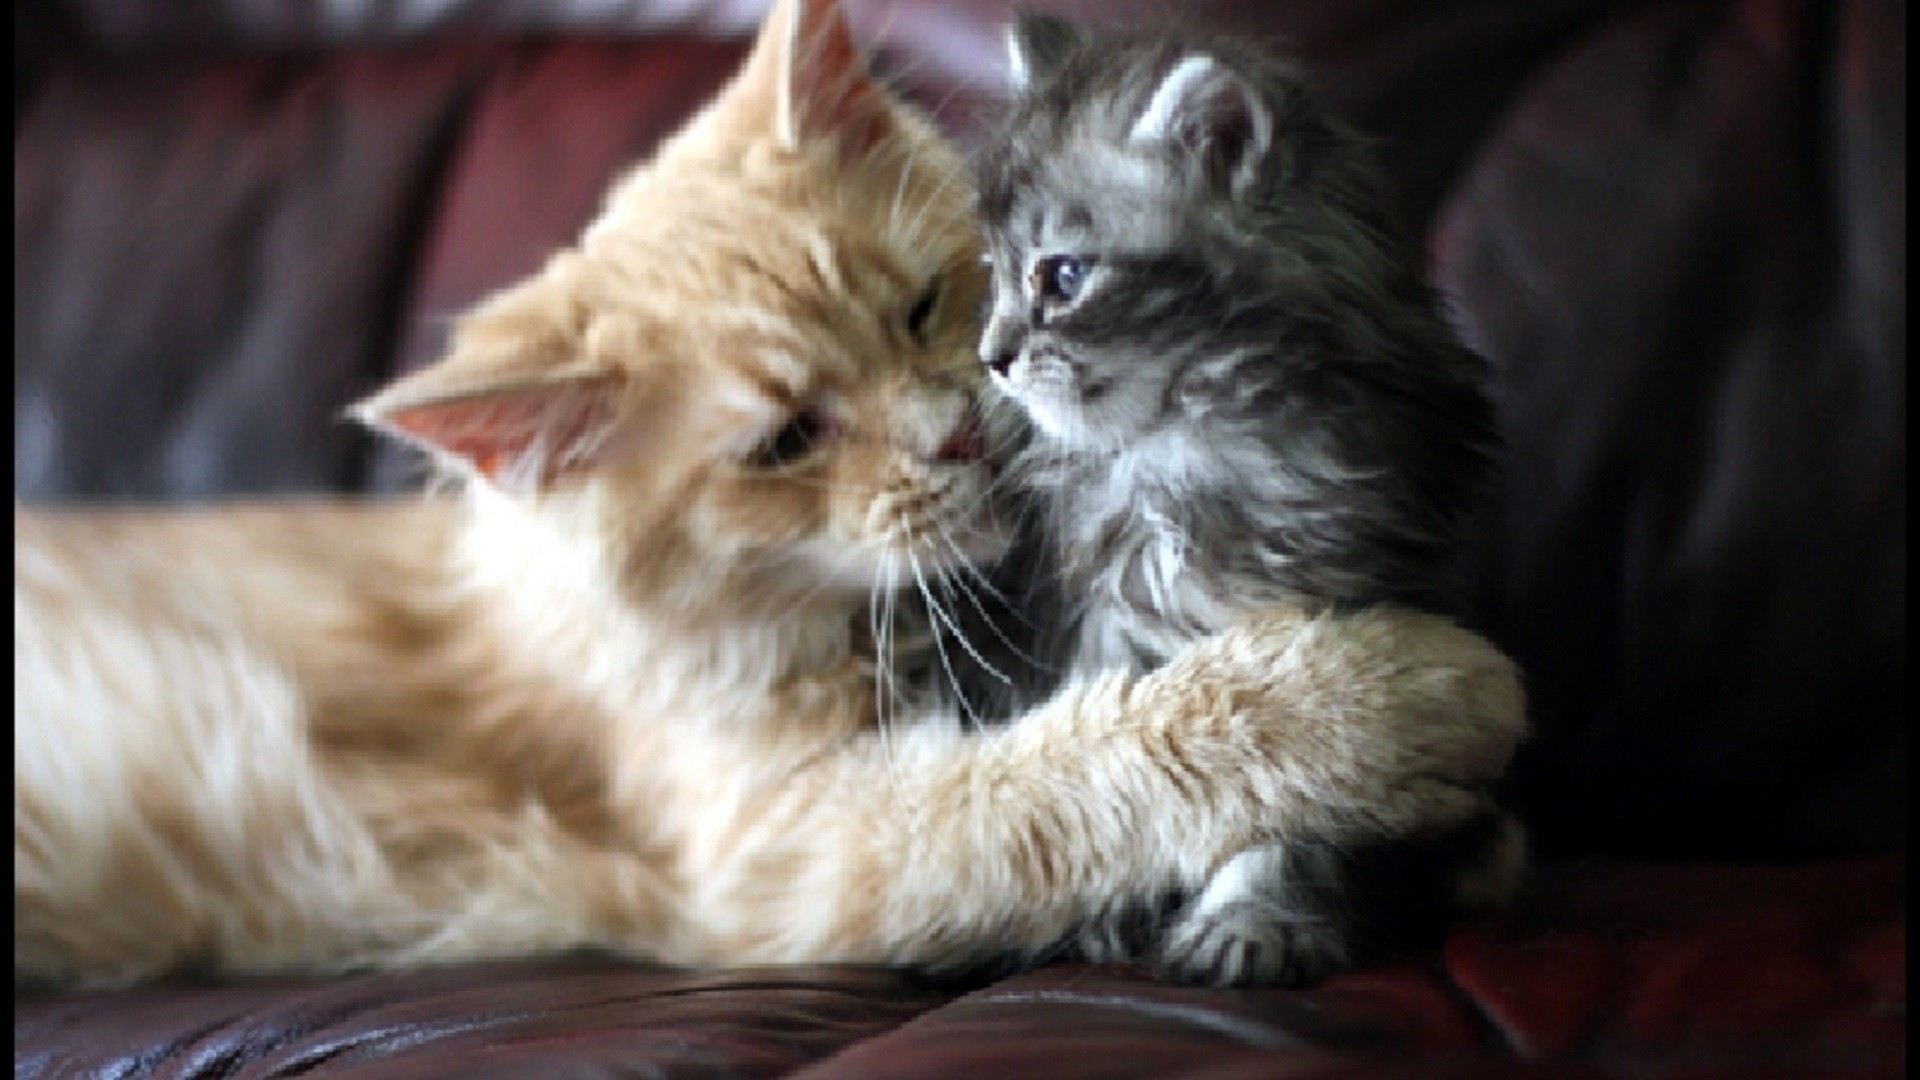 Wallpaper cats and kittens 66 images - Free wallpaper of kittens ...